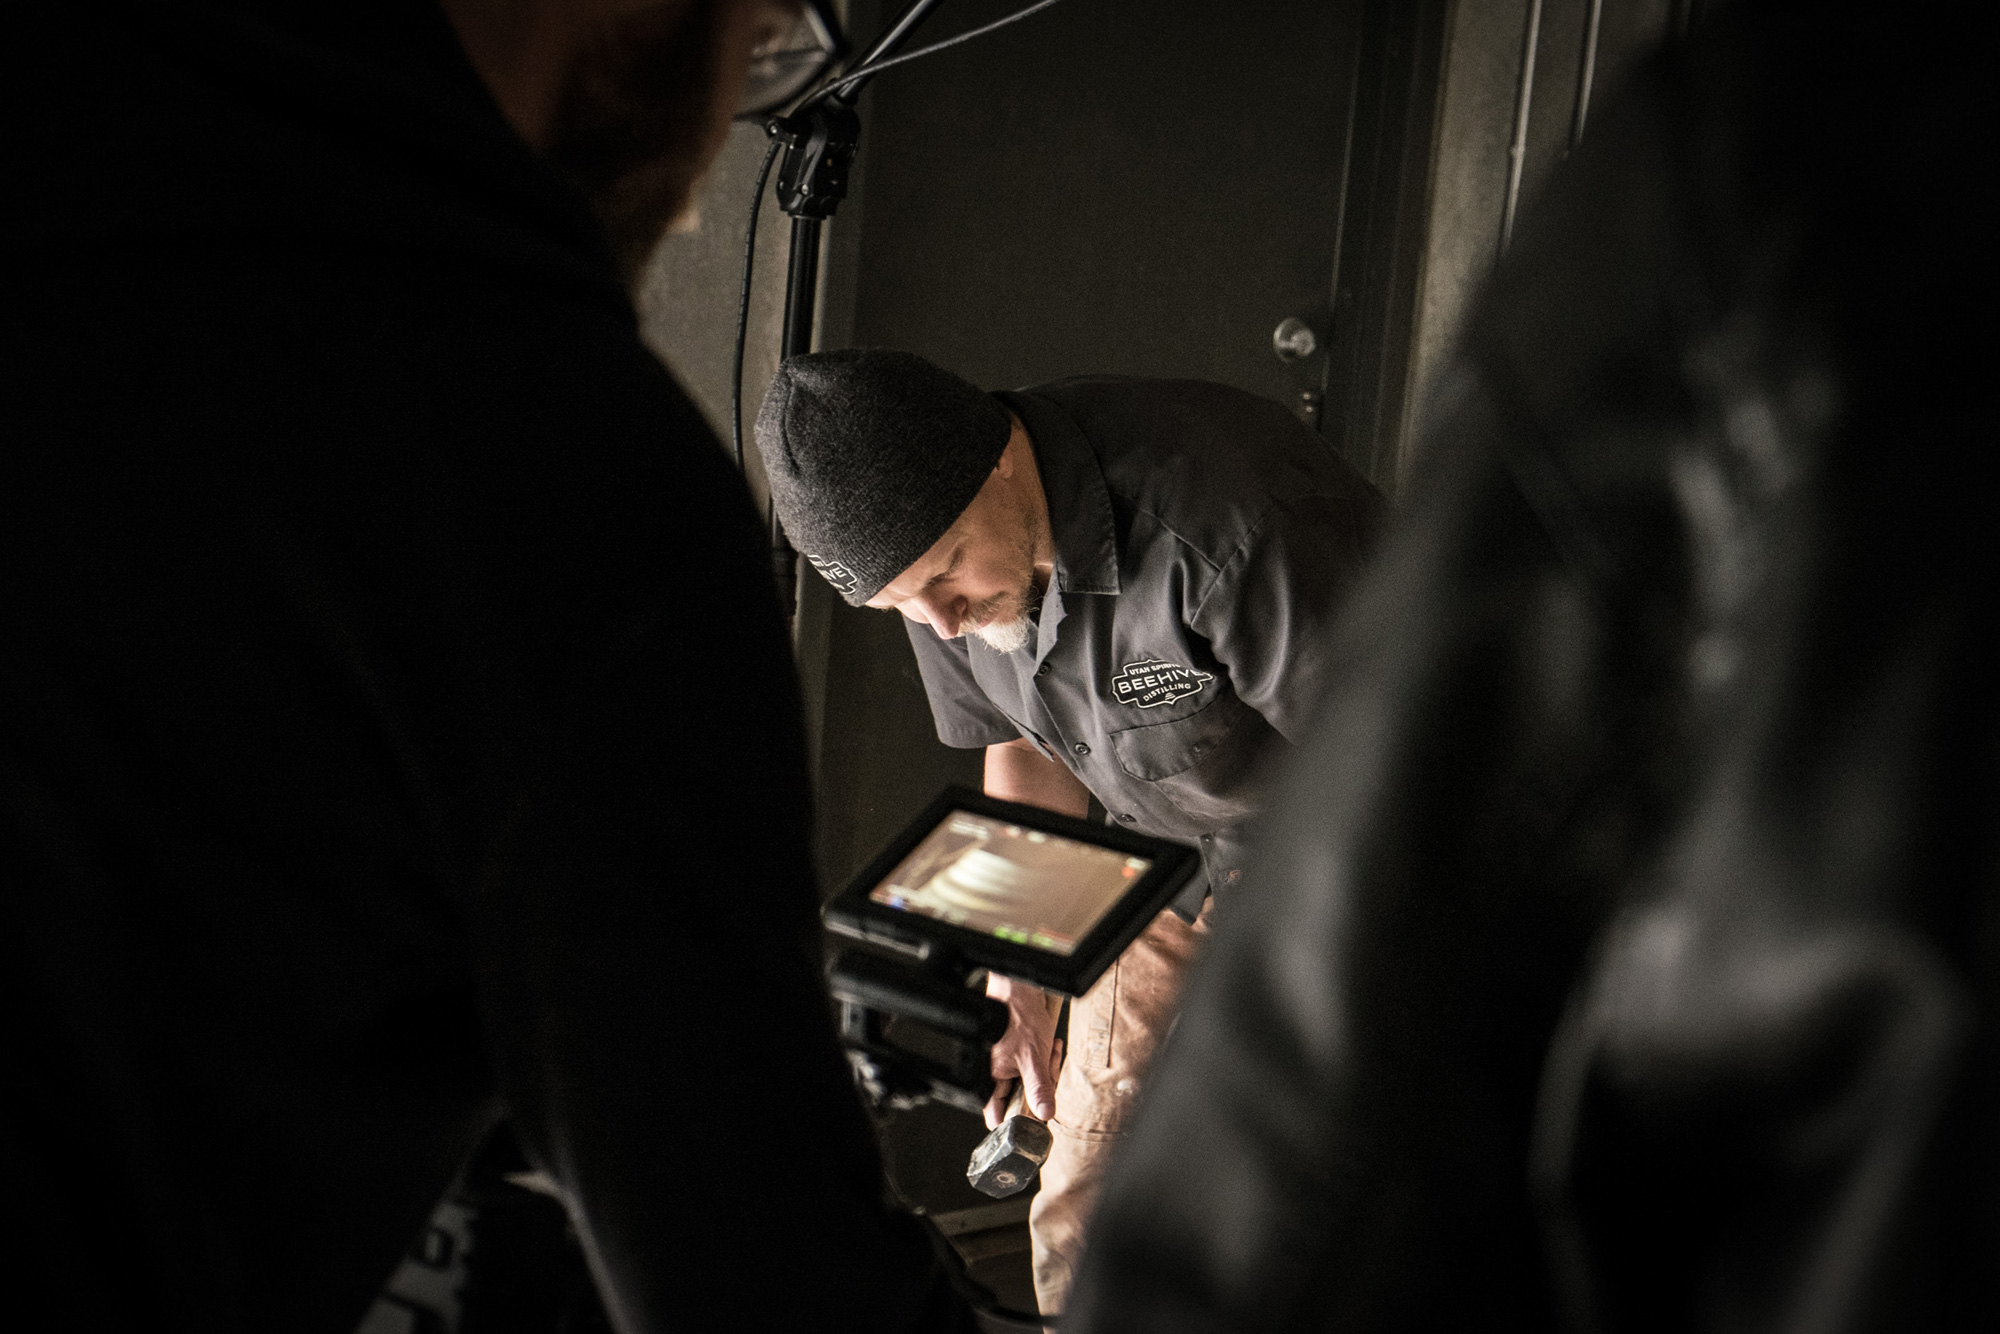 Beehive Distilling Small Batch Craft Gin Salt Lake City Utah 4